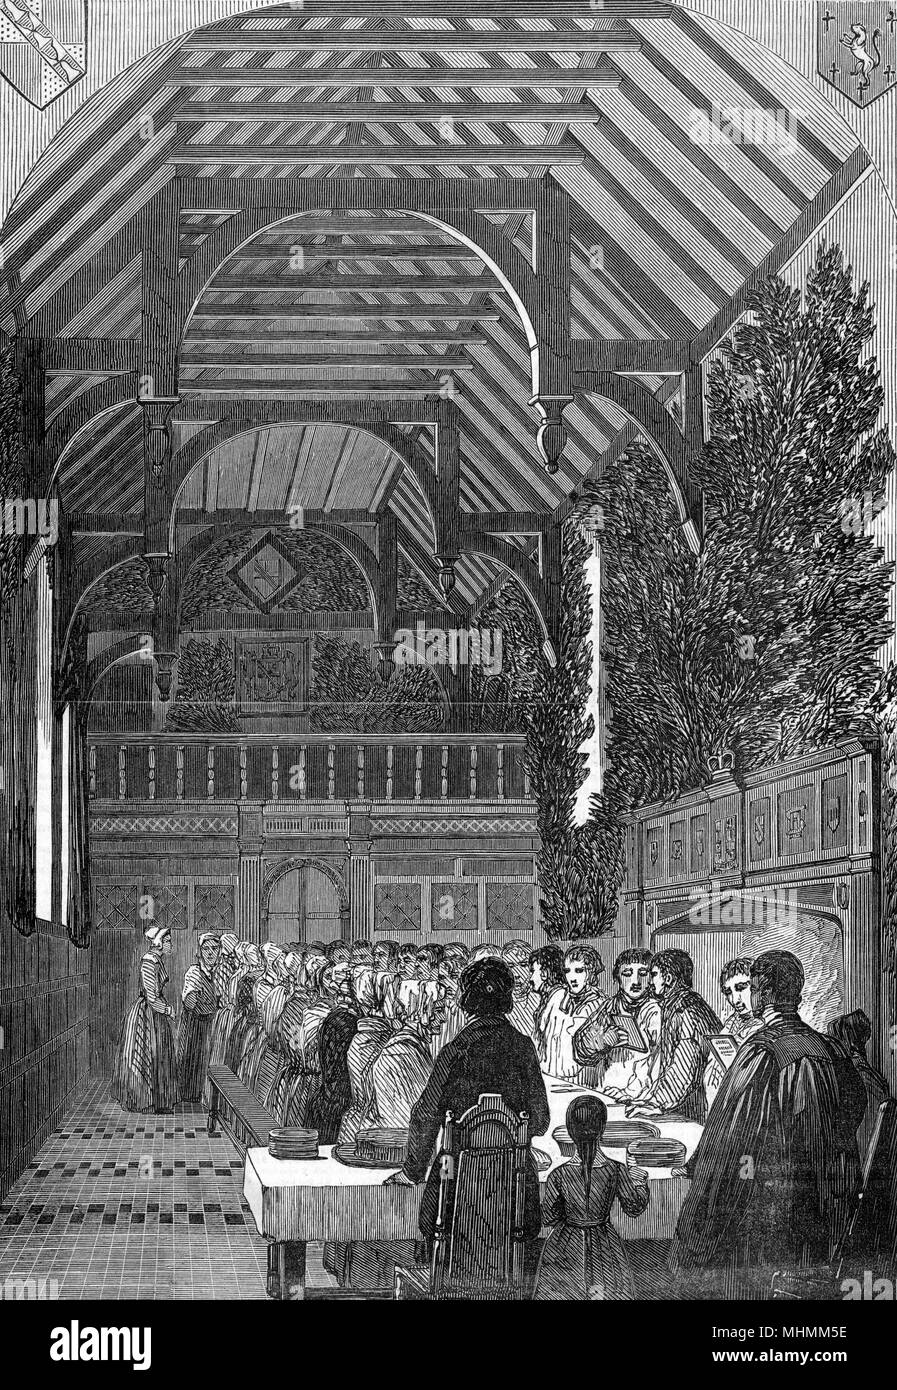 The residents of Sackville College, East Grinstead, Surrey, celebrate Palm Sunday in the timbered and vaulted hall of their almshouse.      Date: 1850 - Stock Image